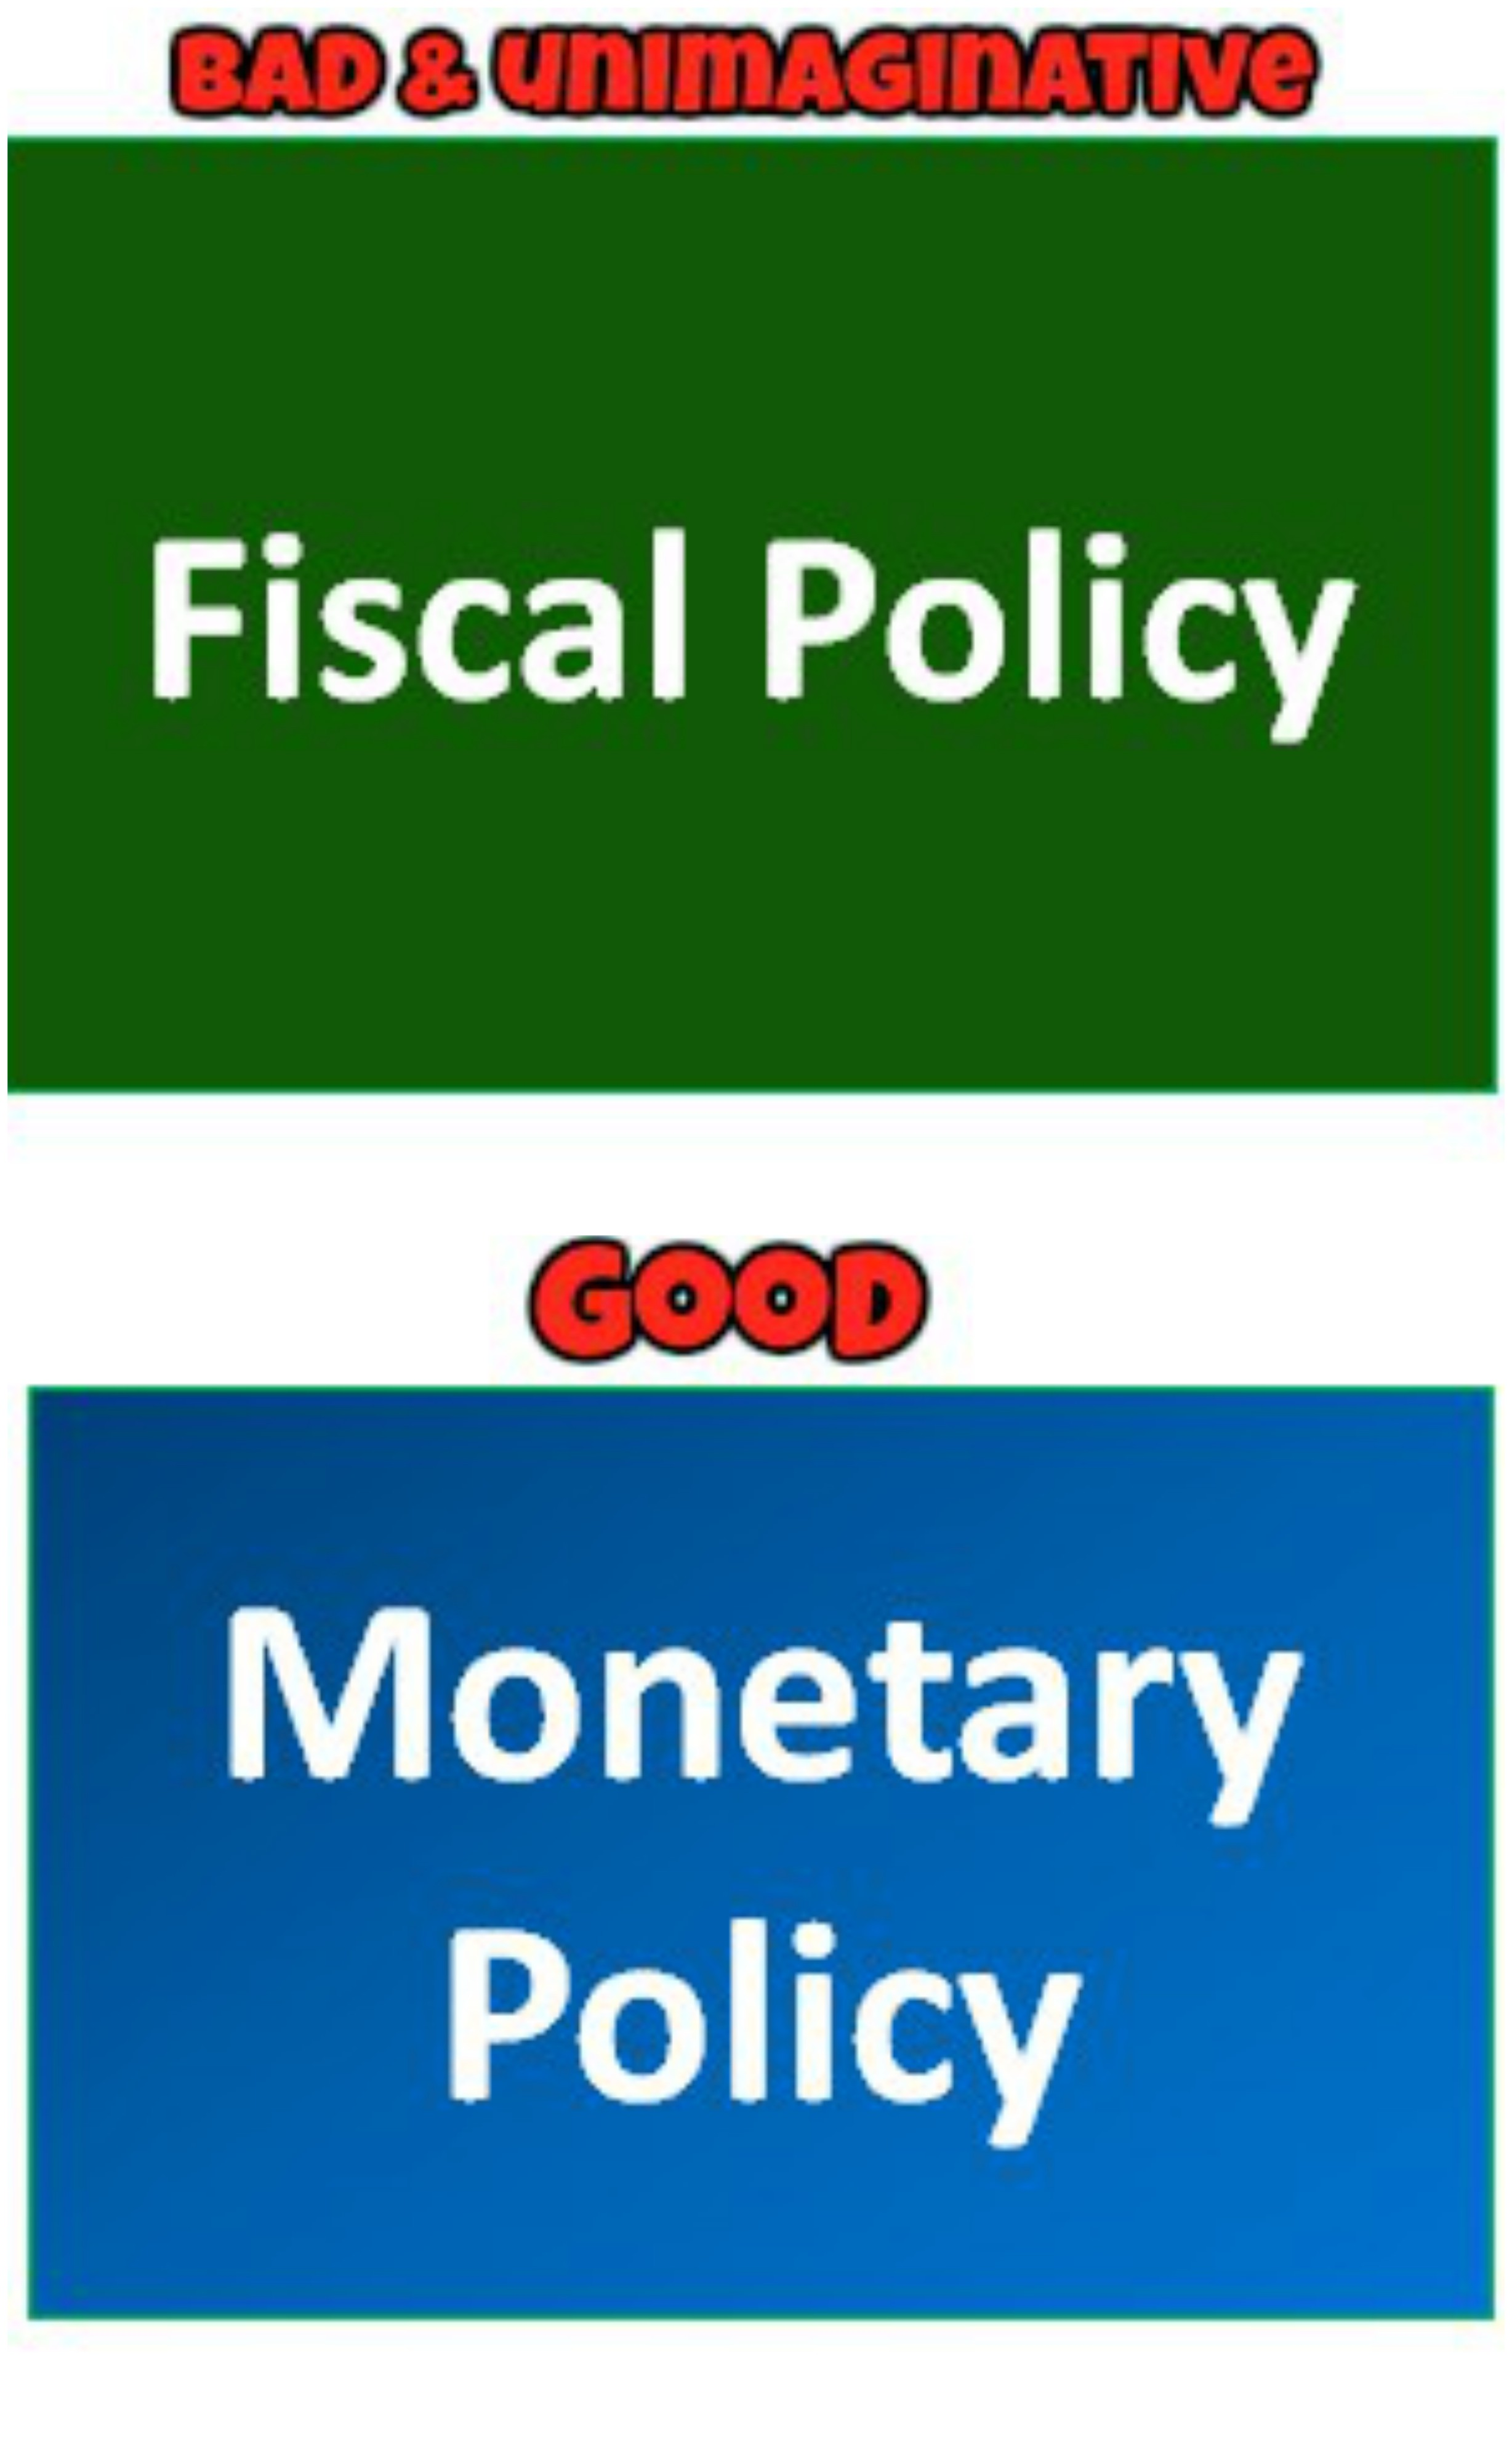 Good Monetary Policy Needs To Be Complemented By Matching Fiscal Policy